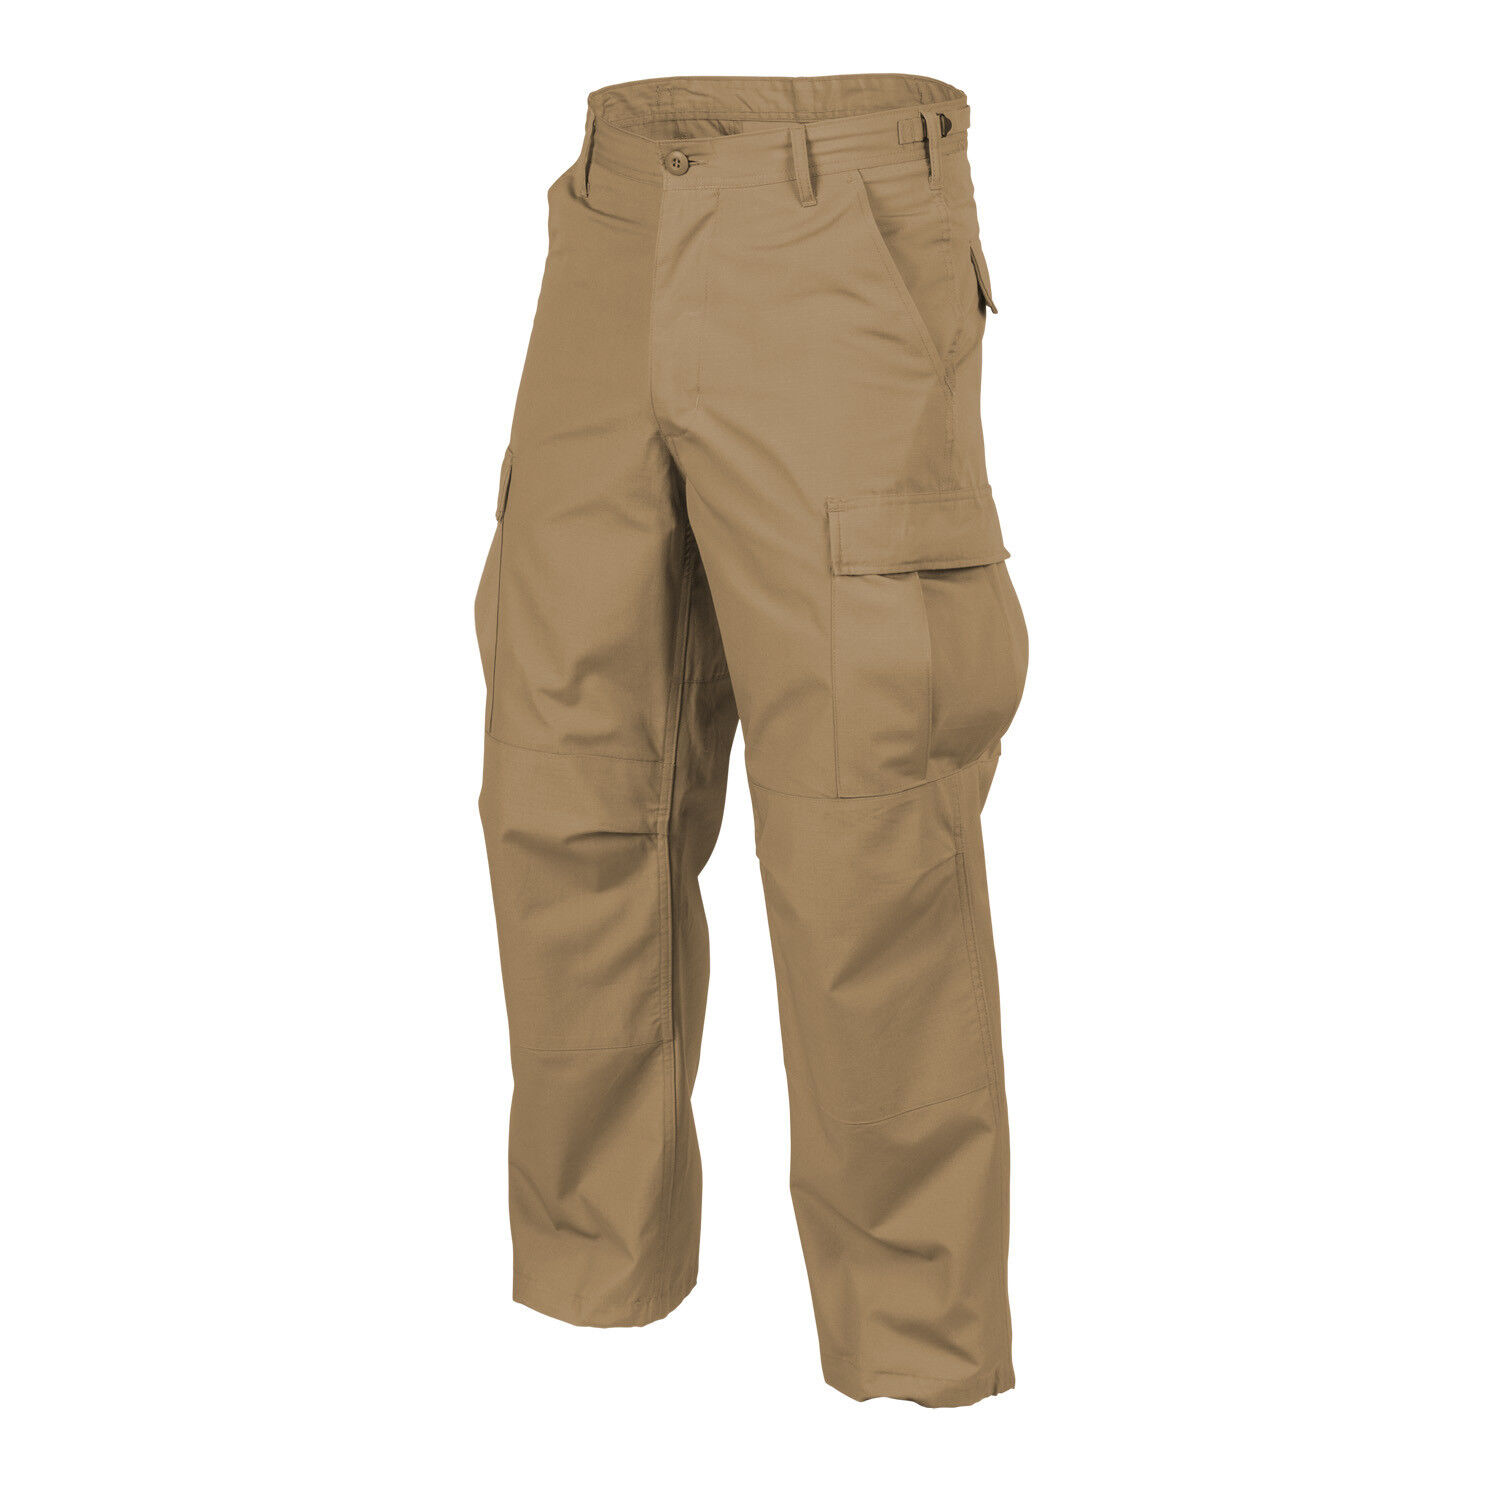 06d14ab37 Helikon Tex US BDU Outdoor Hose Outdoor Army pants coyote XLR XLarge Regular